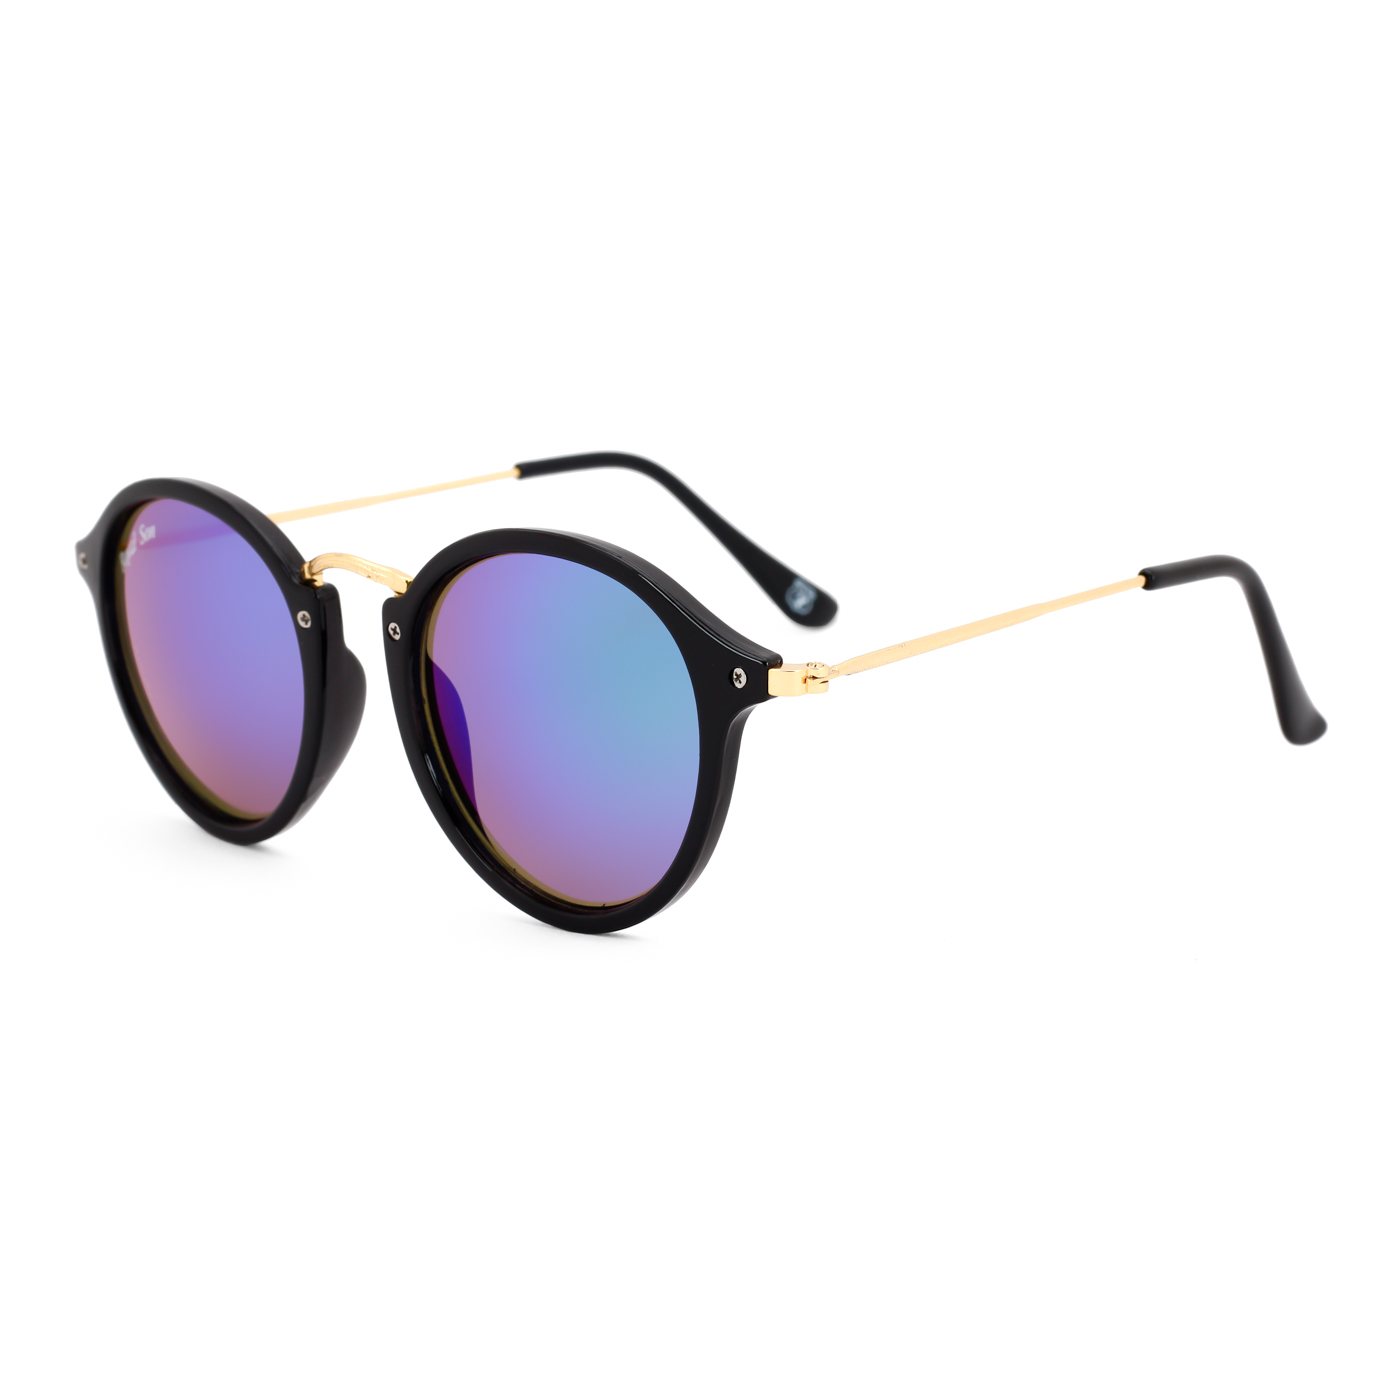 cd065b6897d Royal Son UV Protected Round Sunglasses For Men and Women (RS005RD ...